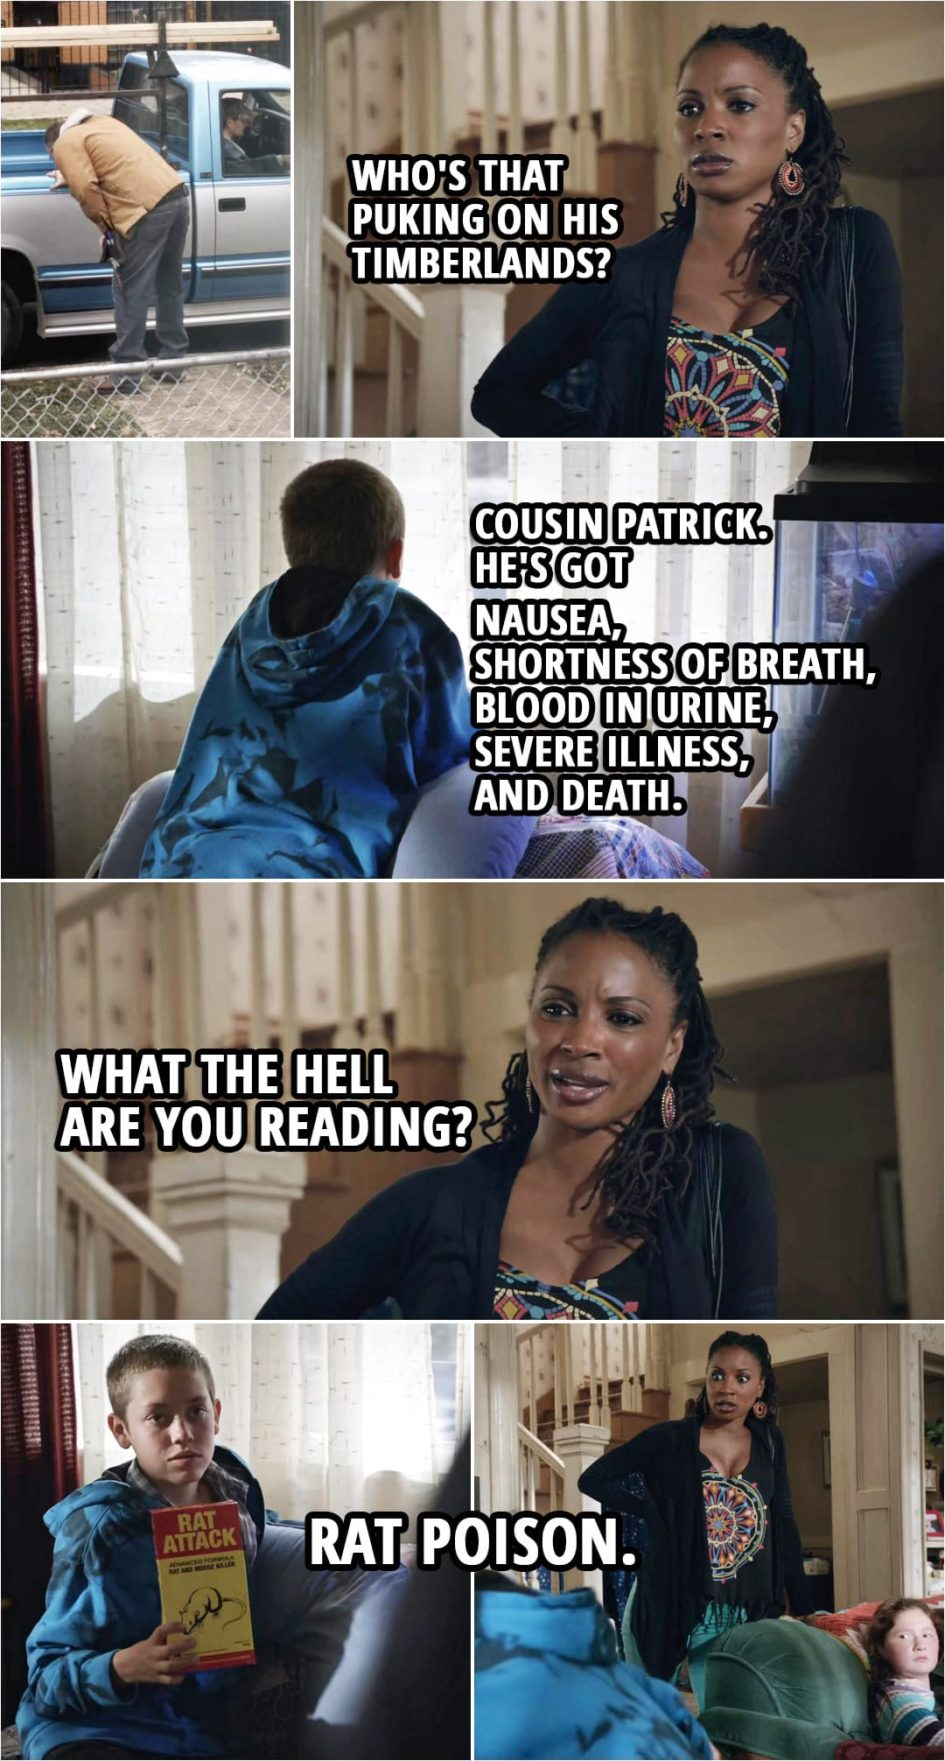 Quote from Shameless 3x08 | Veronica Fisher: Who's that puking on his Timberlands? Carl Gallagher: Cousin Patrick. He's got nausea, shortness of breath, blood in urine, severe illness, and death. Veronica Fisher: What the hell are you reading? Carl Gallagher: Rat poison.